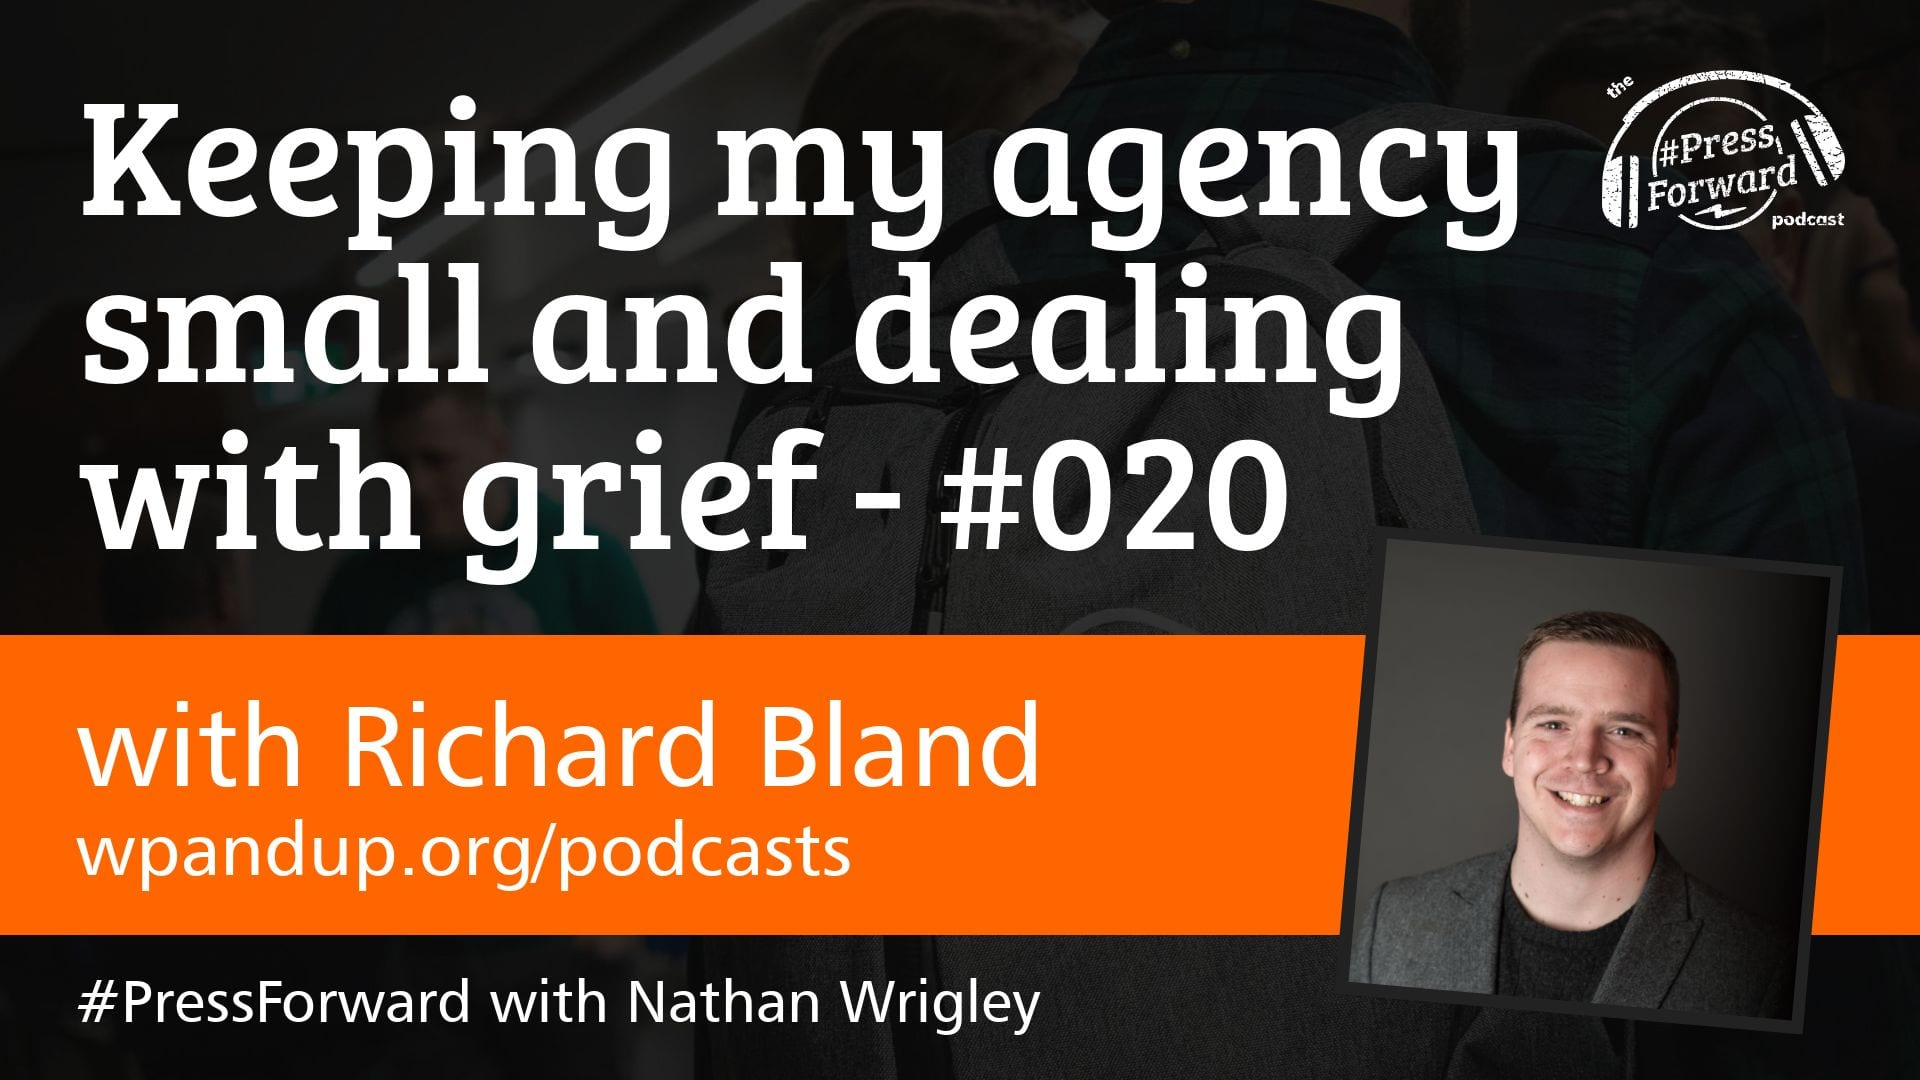 Keeping my agency small and dealing with grief - #020